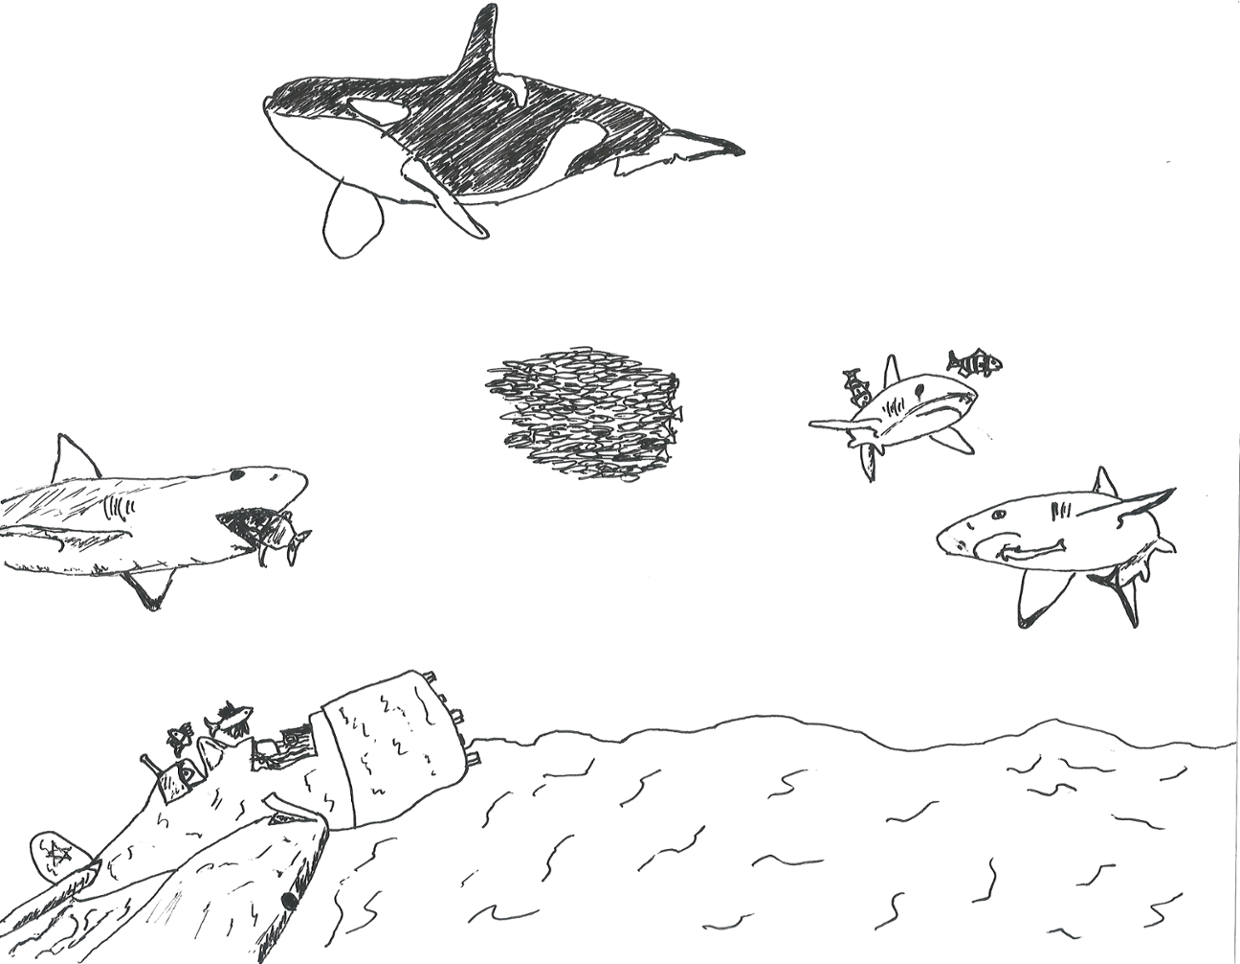 science 10 e - ecosystem drawing project